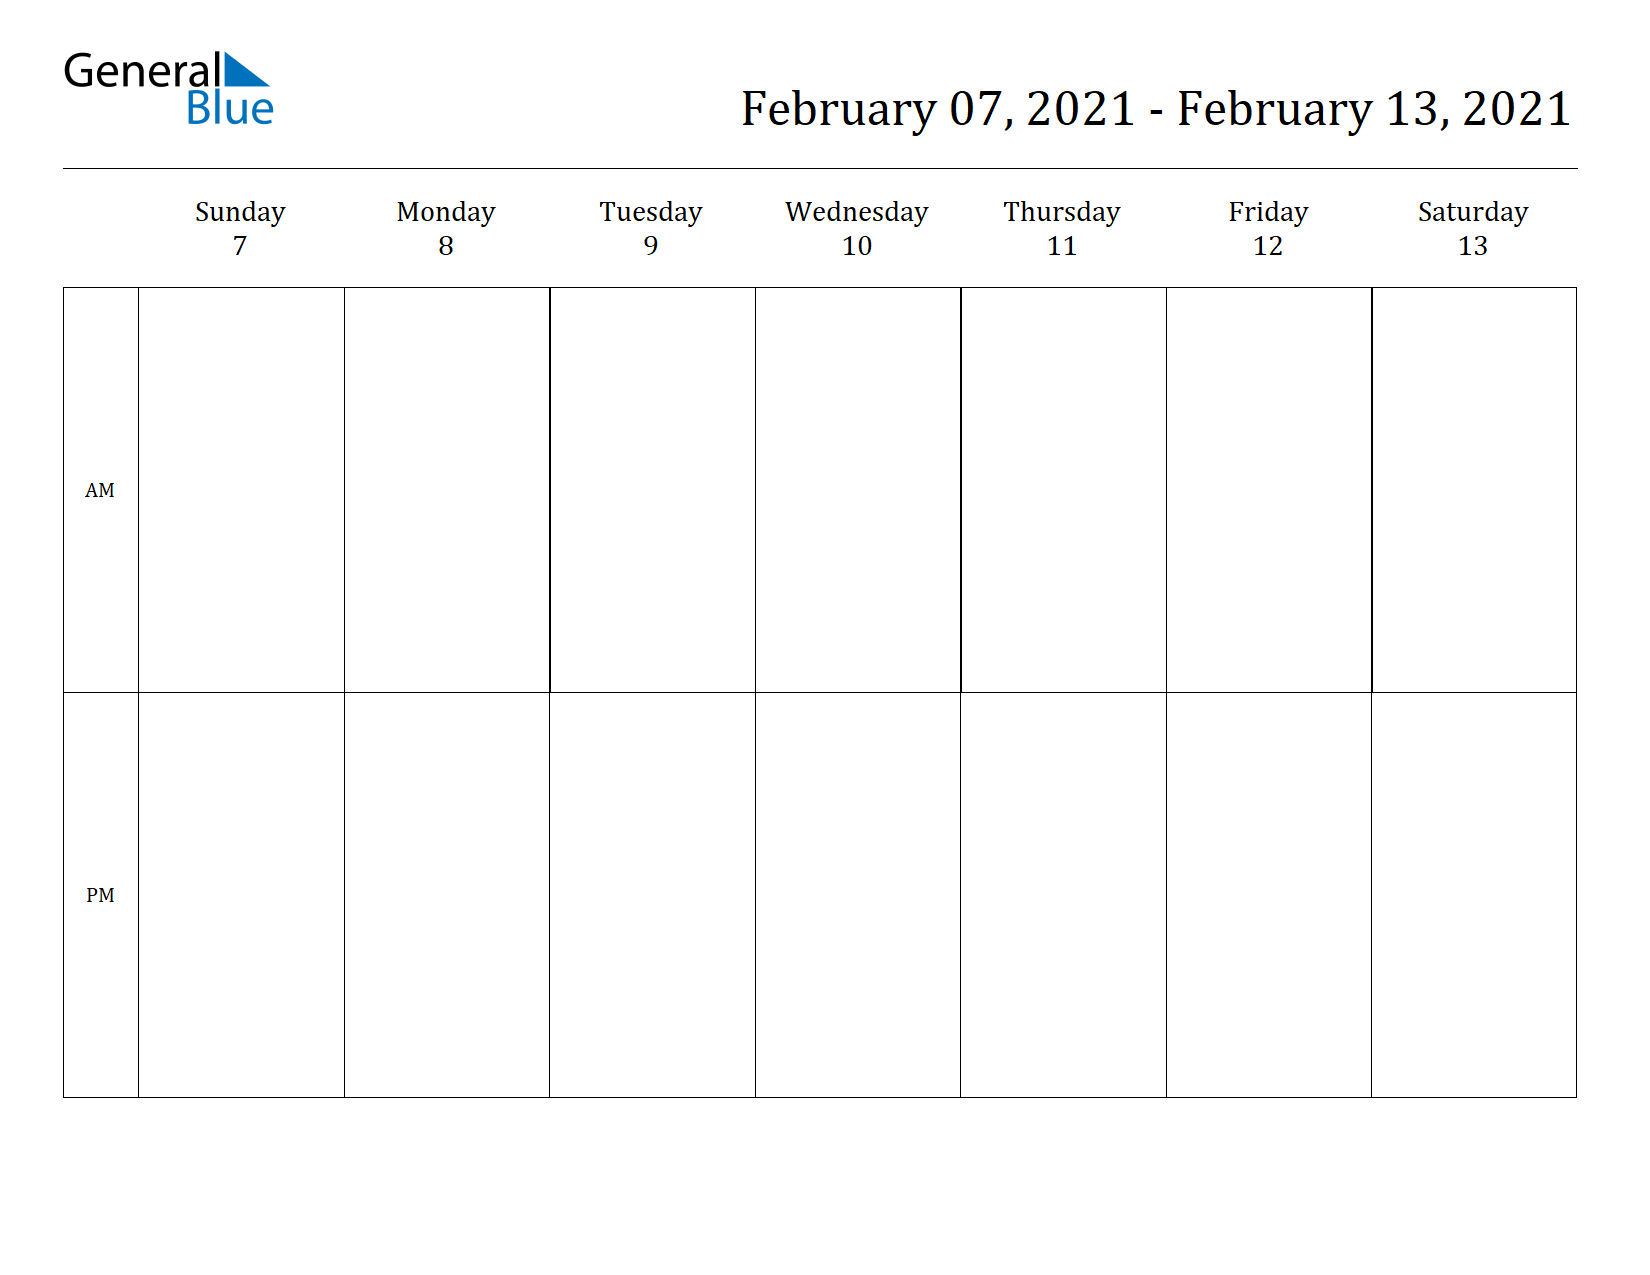 Weekly Calendar for Feb 07, 2021 to Feb 13, 2021